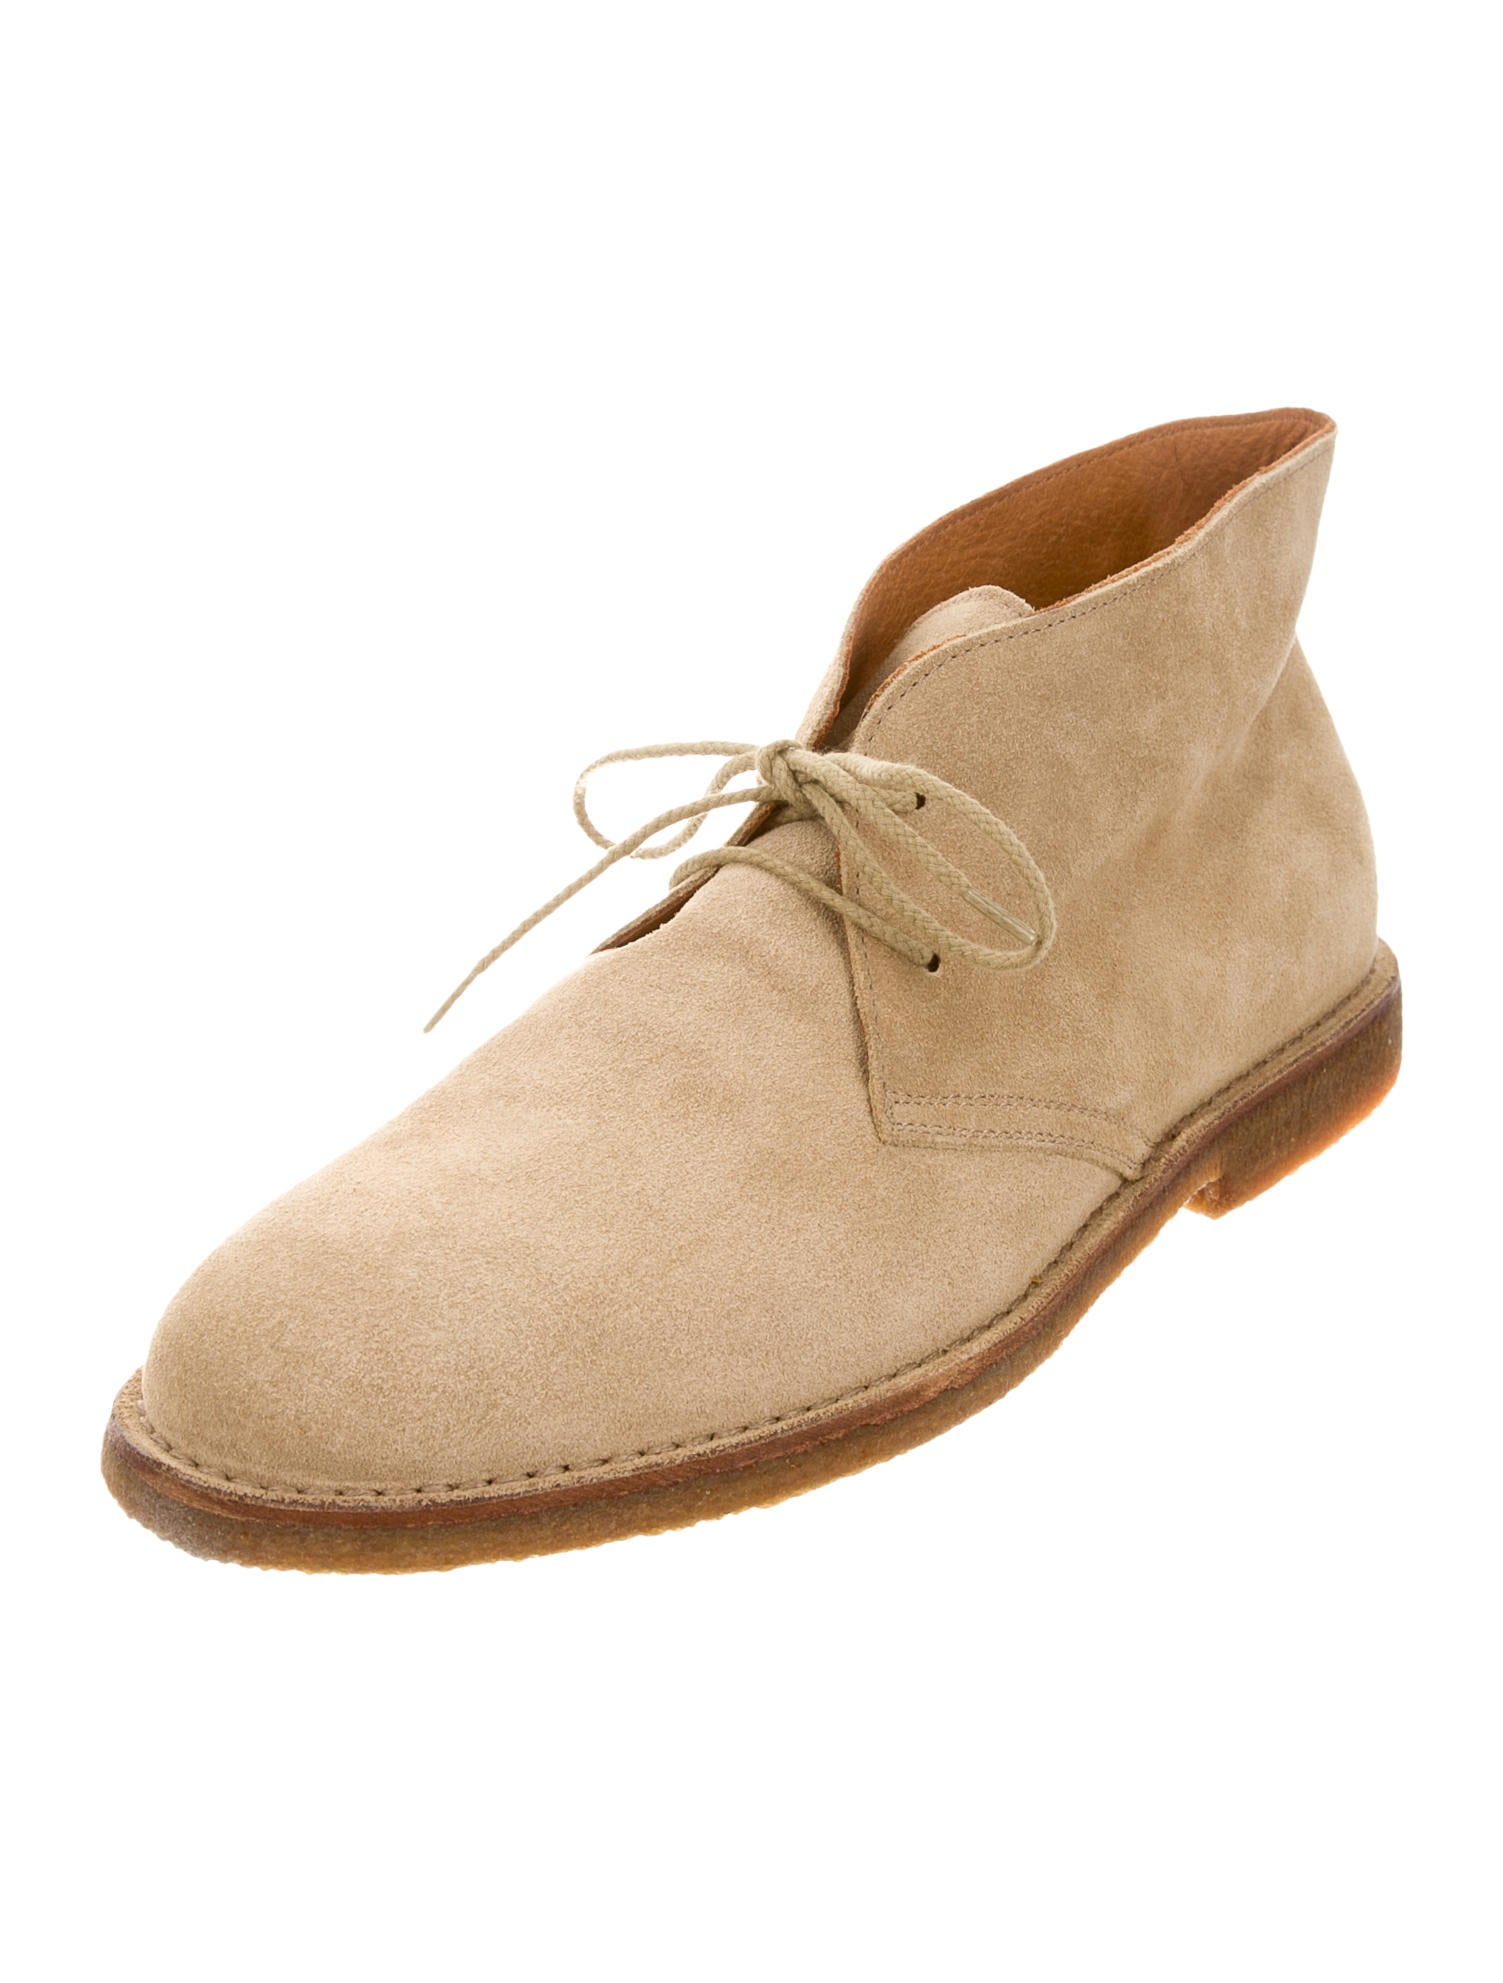 barney s suede lace up ankle boots shoes bar20282